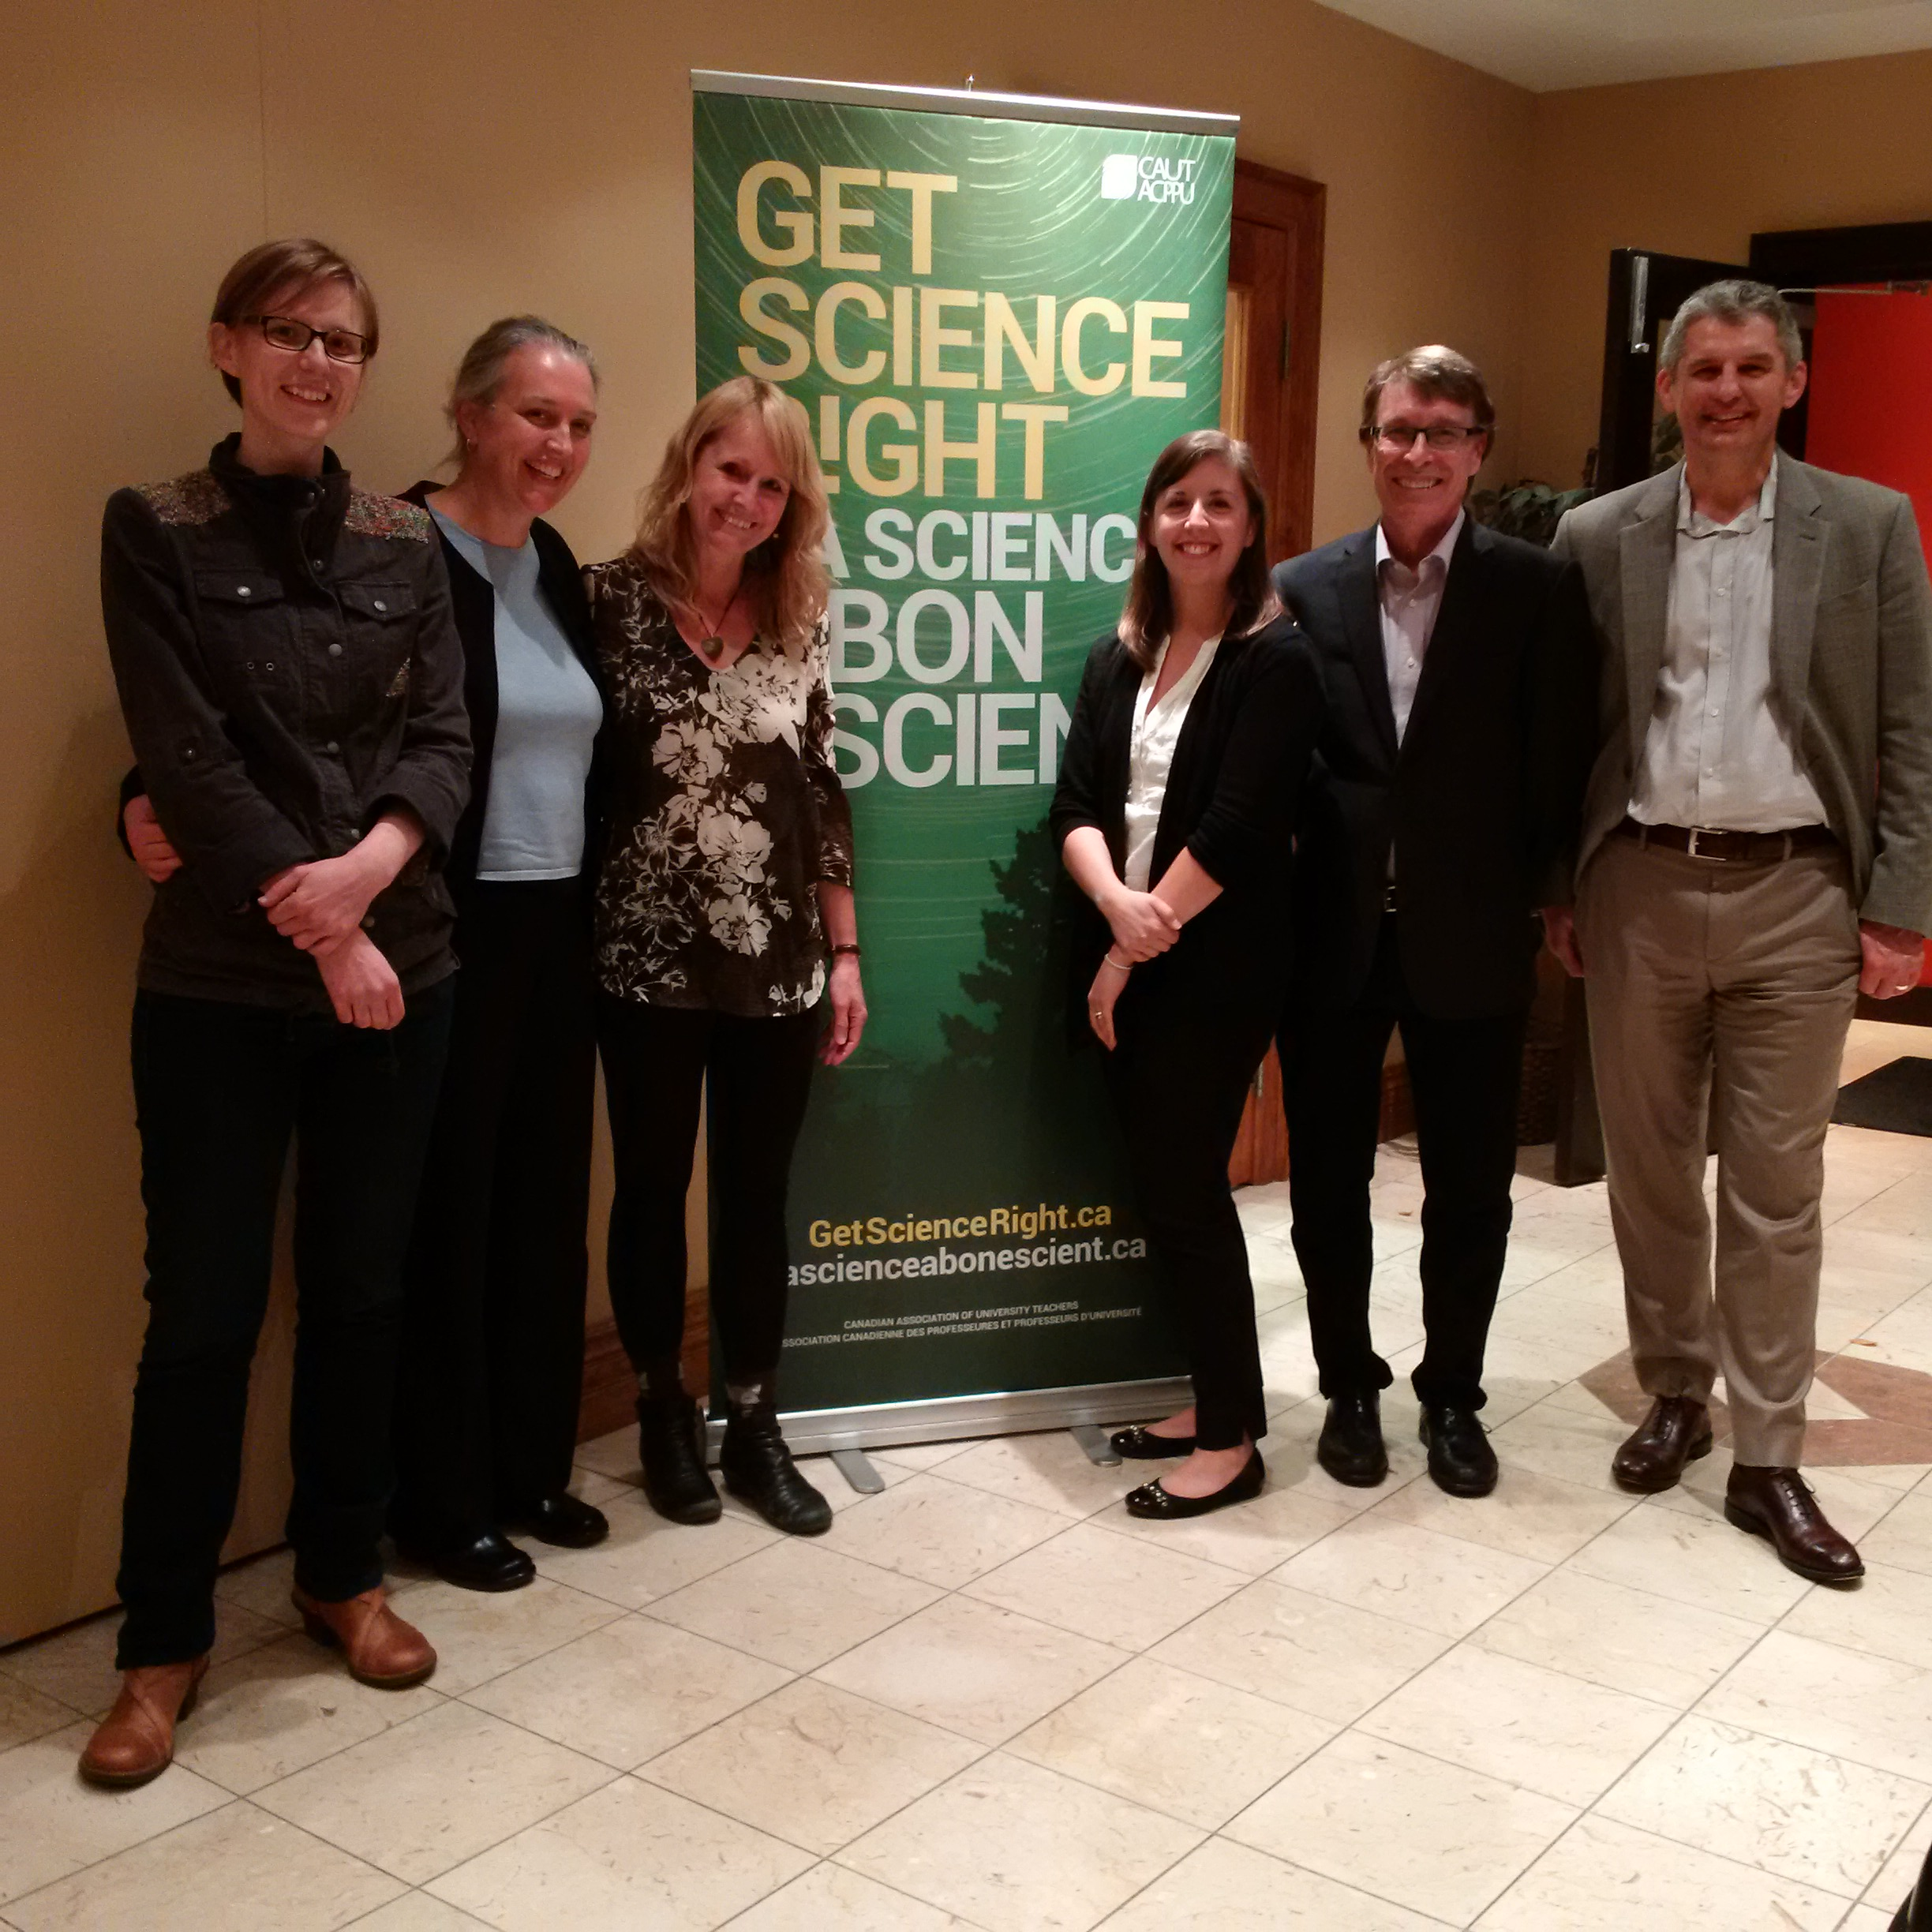 Getting Science Right in Waterloo, Oct 1-2015